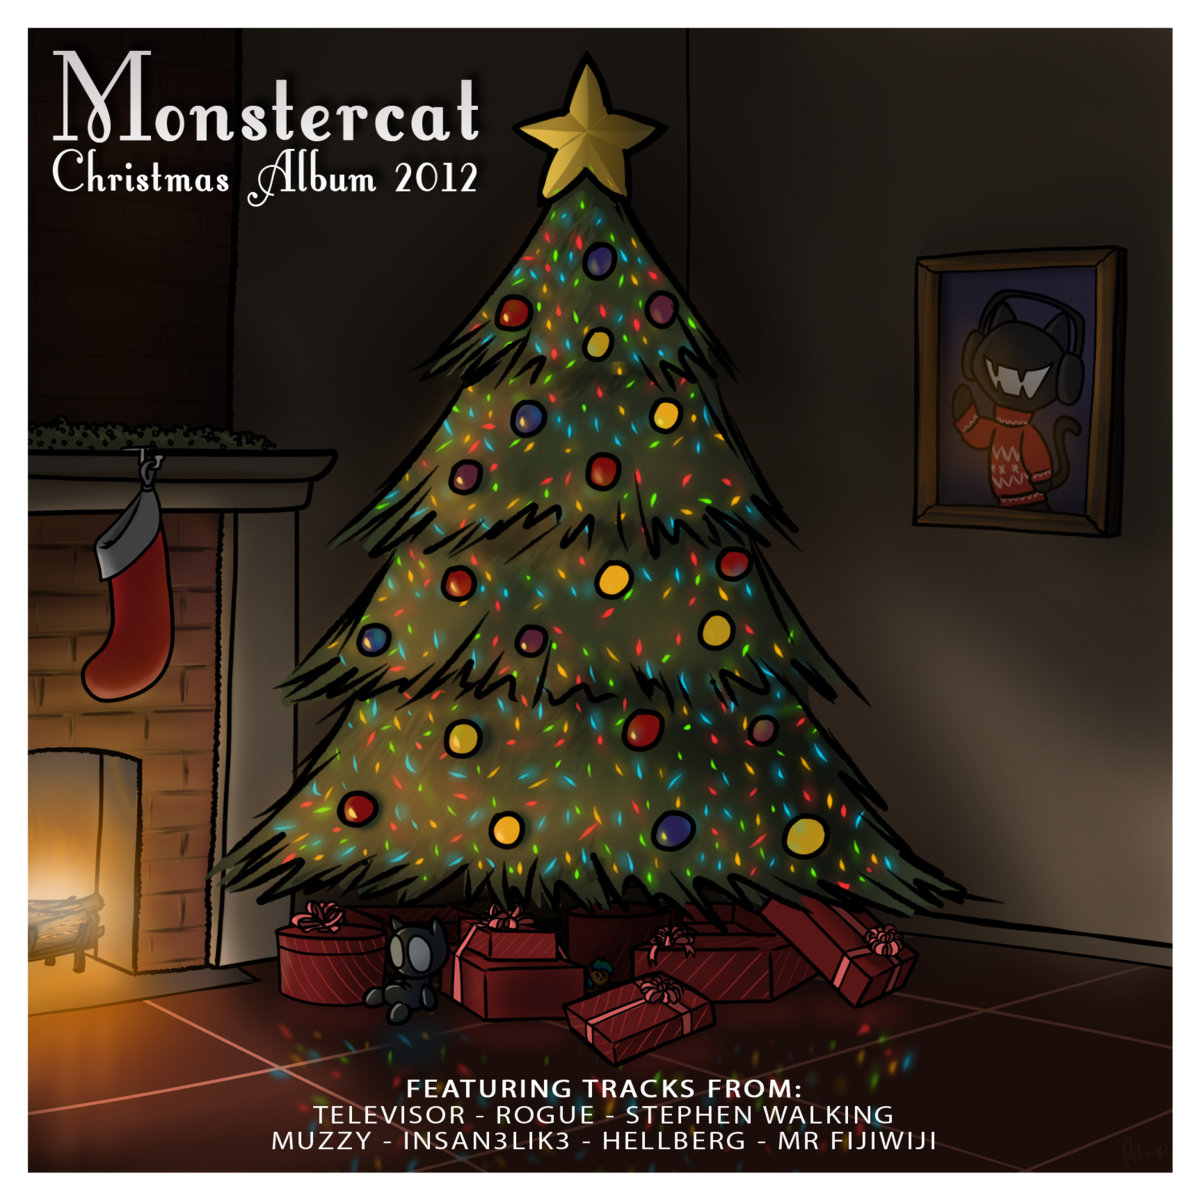 Christmas Album Cover Art.Monstercat Christmas Album 2012 Free Monstercat